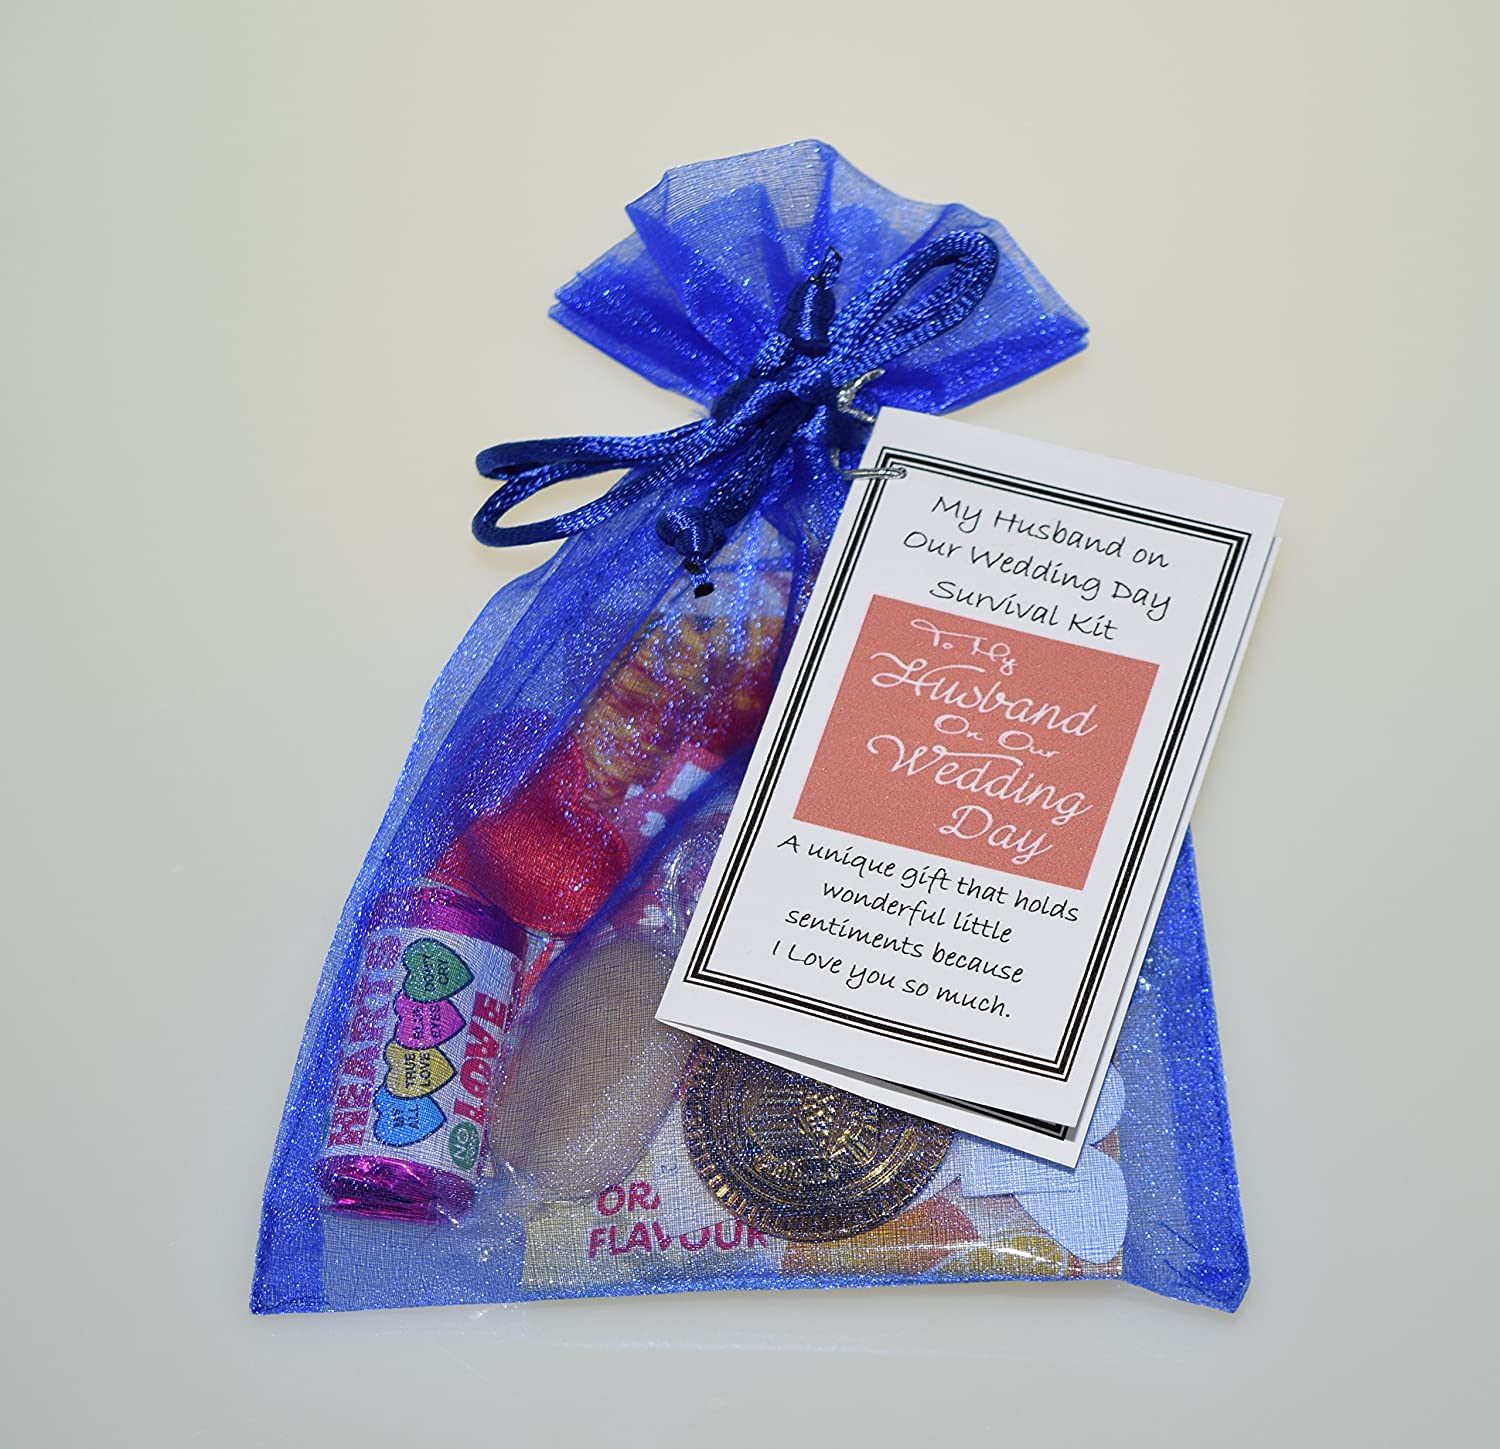 Special Thoughtful keepsake Gift My Husband on our Wedding Day Survival Kit